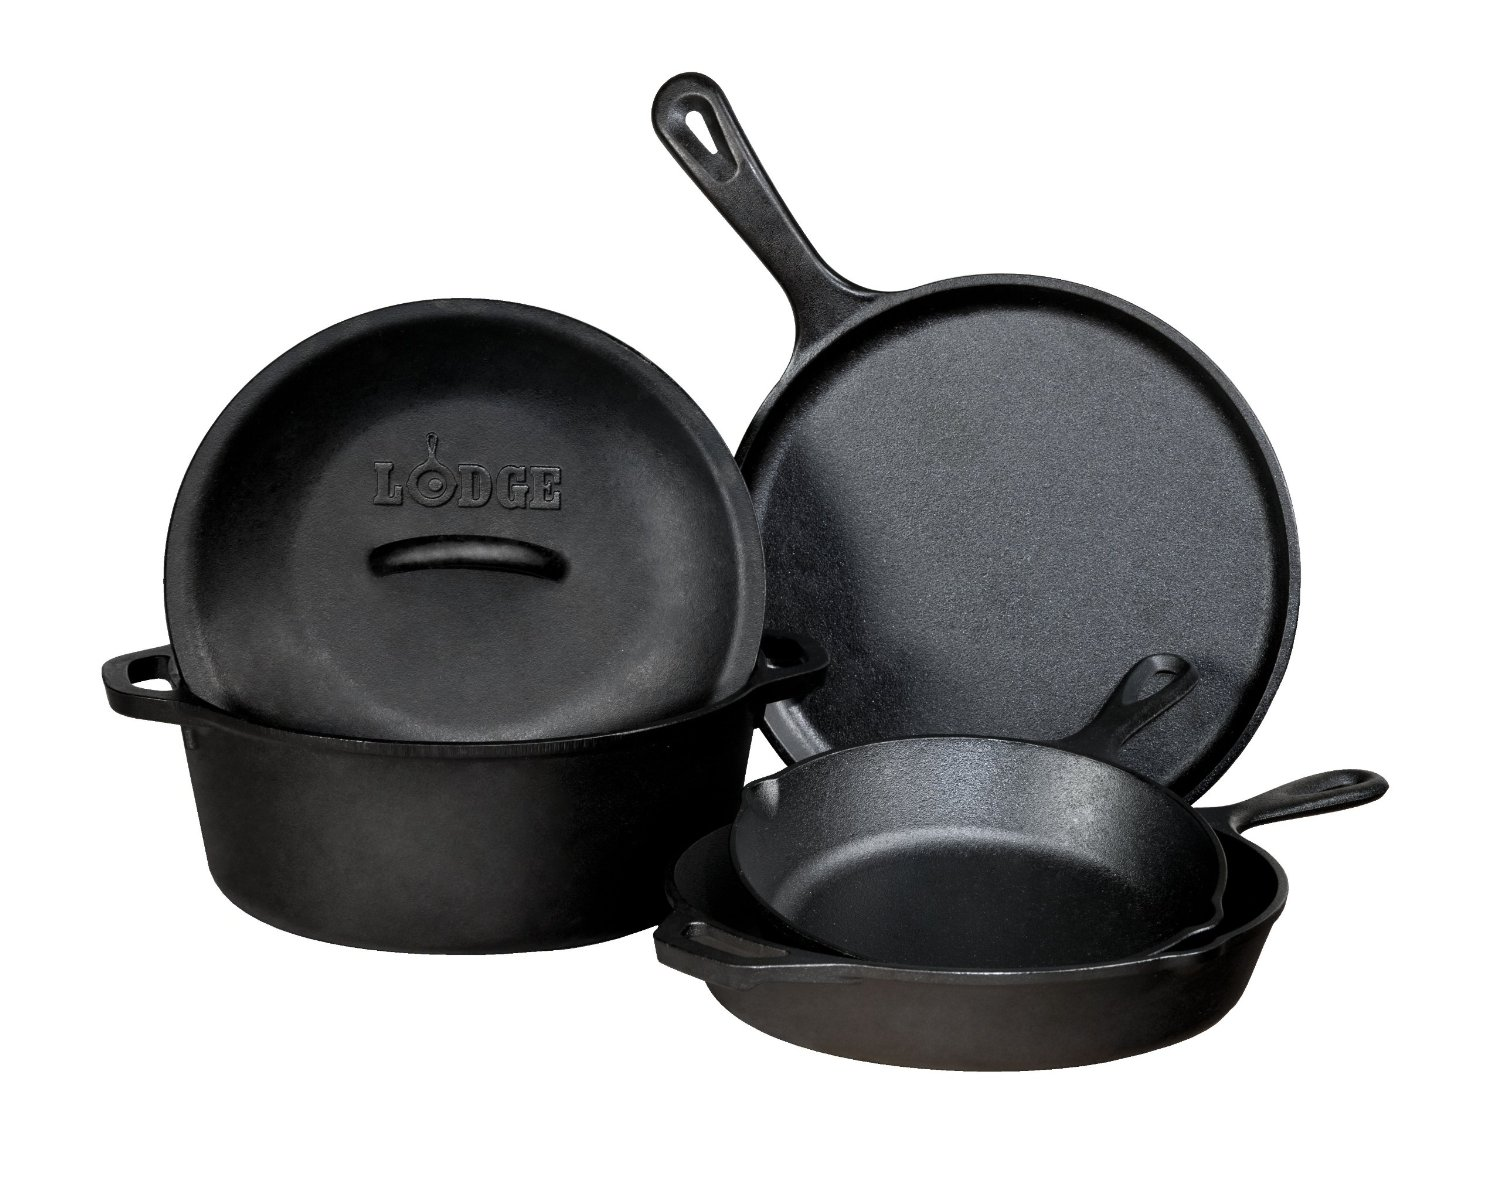 cast iron Find great deals on ebay for cast iron and cast iron cookware shop with confidence.